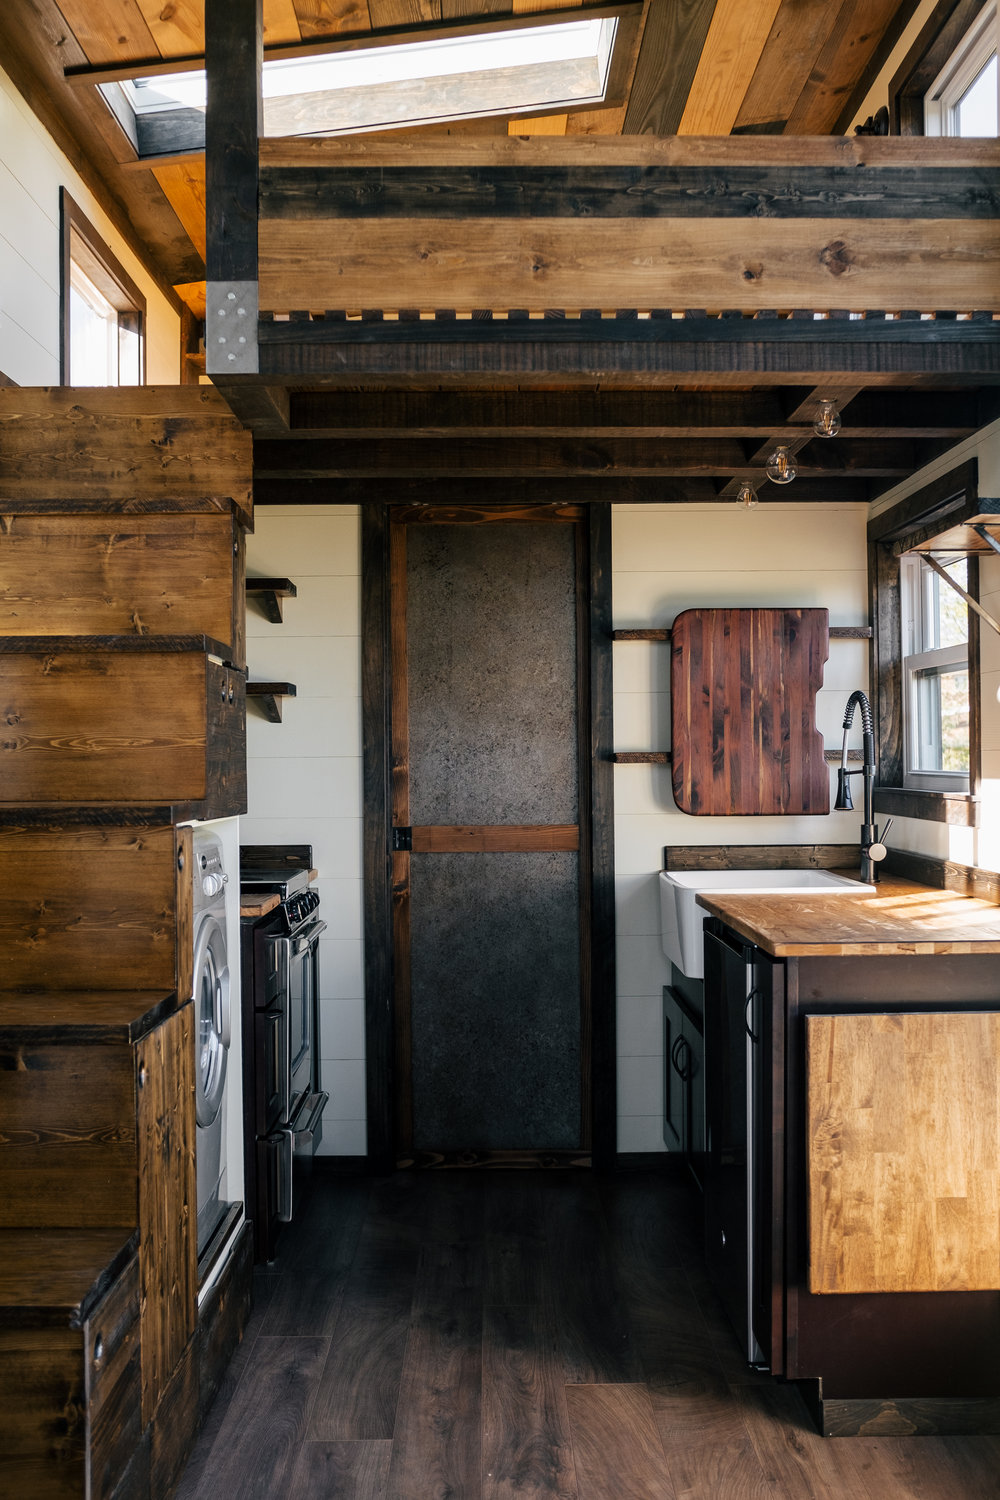 The Silhouette by Wind River Tiny Homes - shaker style cabinets, farmhouse sink, cedar sink cutting board, fold down table, storage stairs, patina steel pocket door